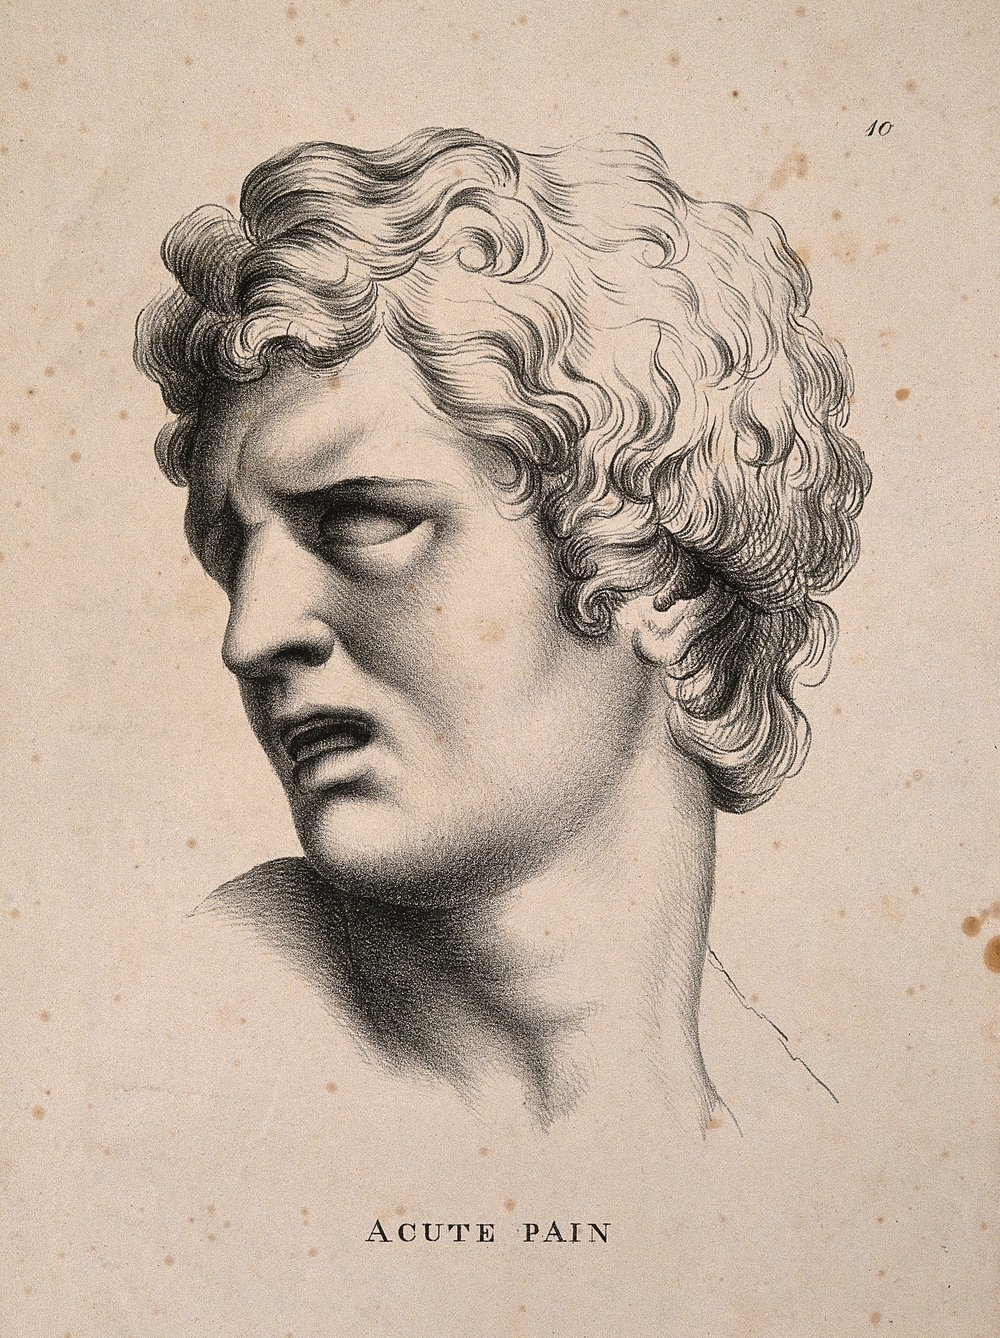 A face turned away, suffering acute pain. Lithograph by P. Simonau, 1822, after C. Le Brun.